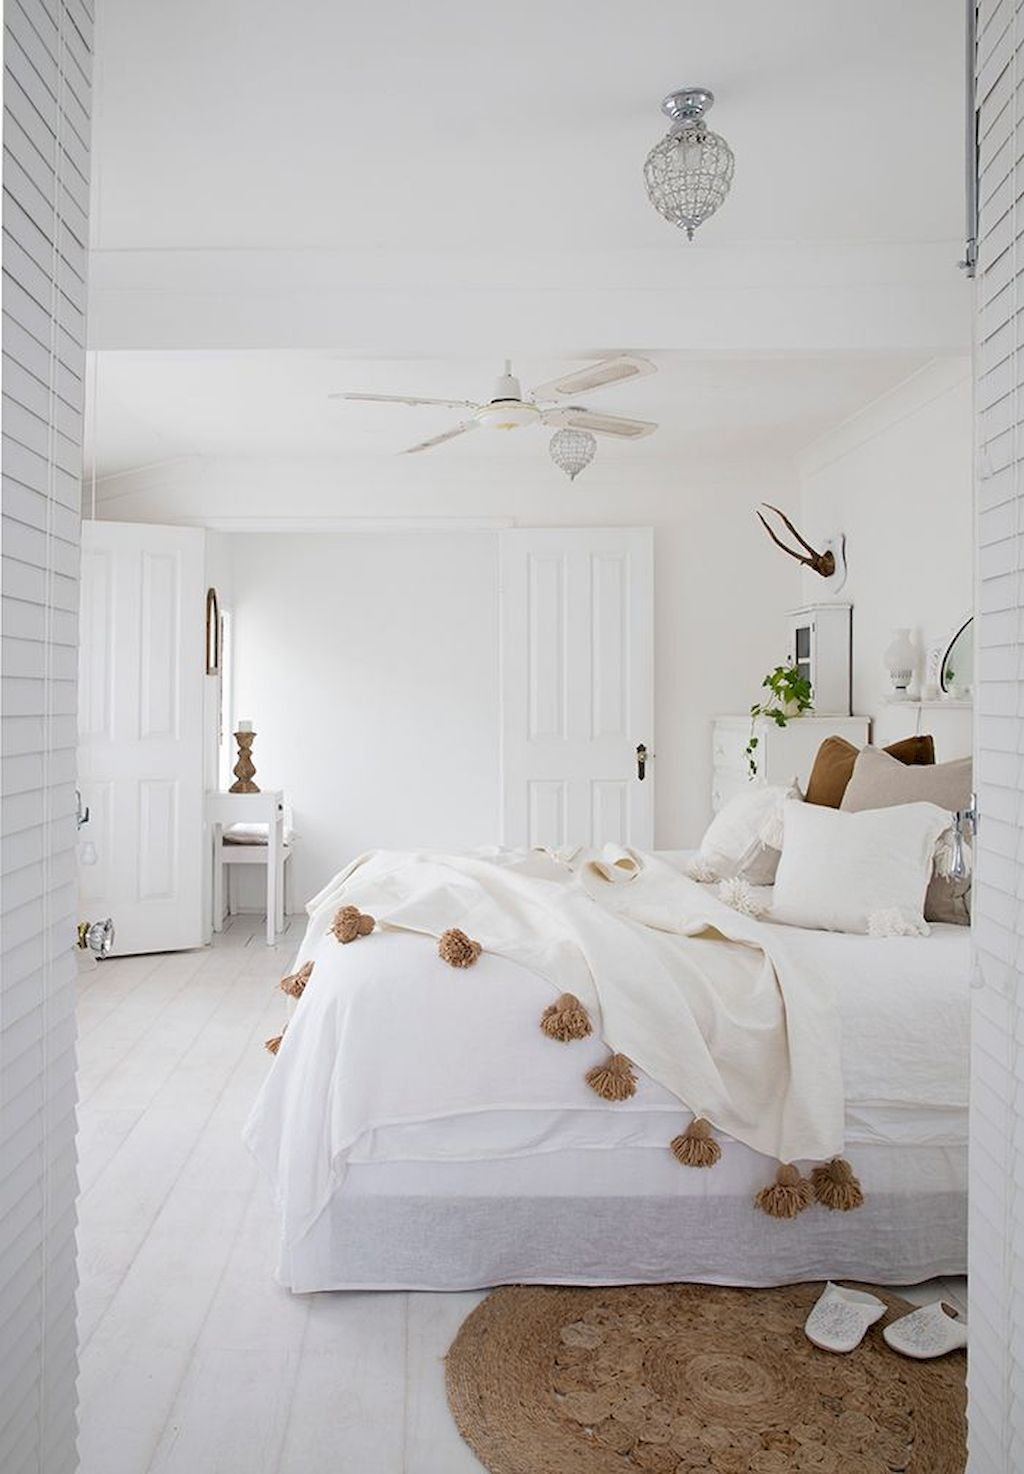 Best Awesome 85 Bohemian Style Modern Bedroom Decor Ideas Https Homespecially Com 85 Bohemian Style 640 x 480